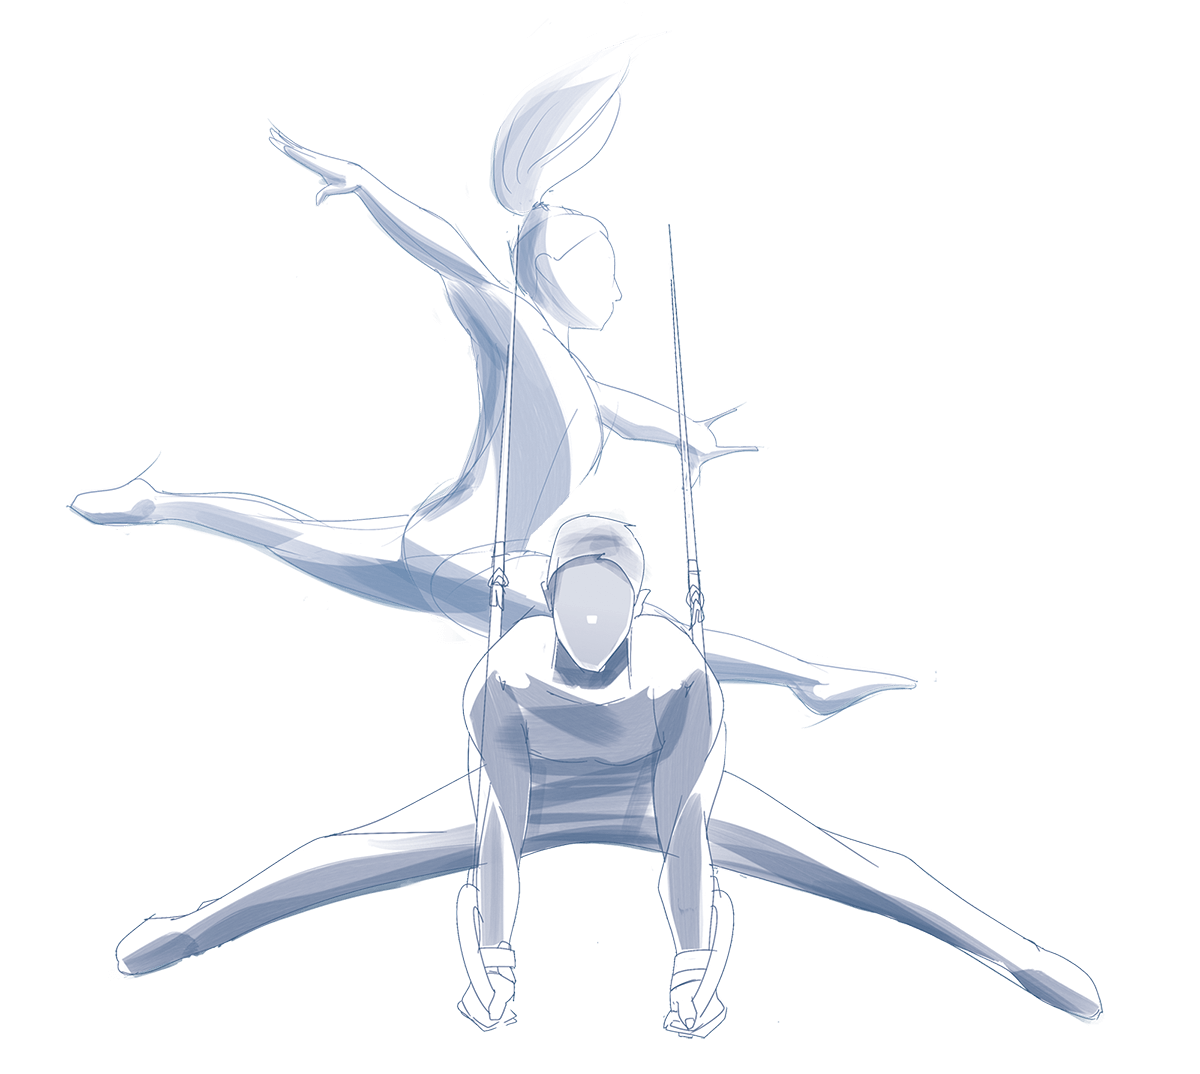 Male and female gymnasts illustration